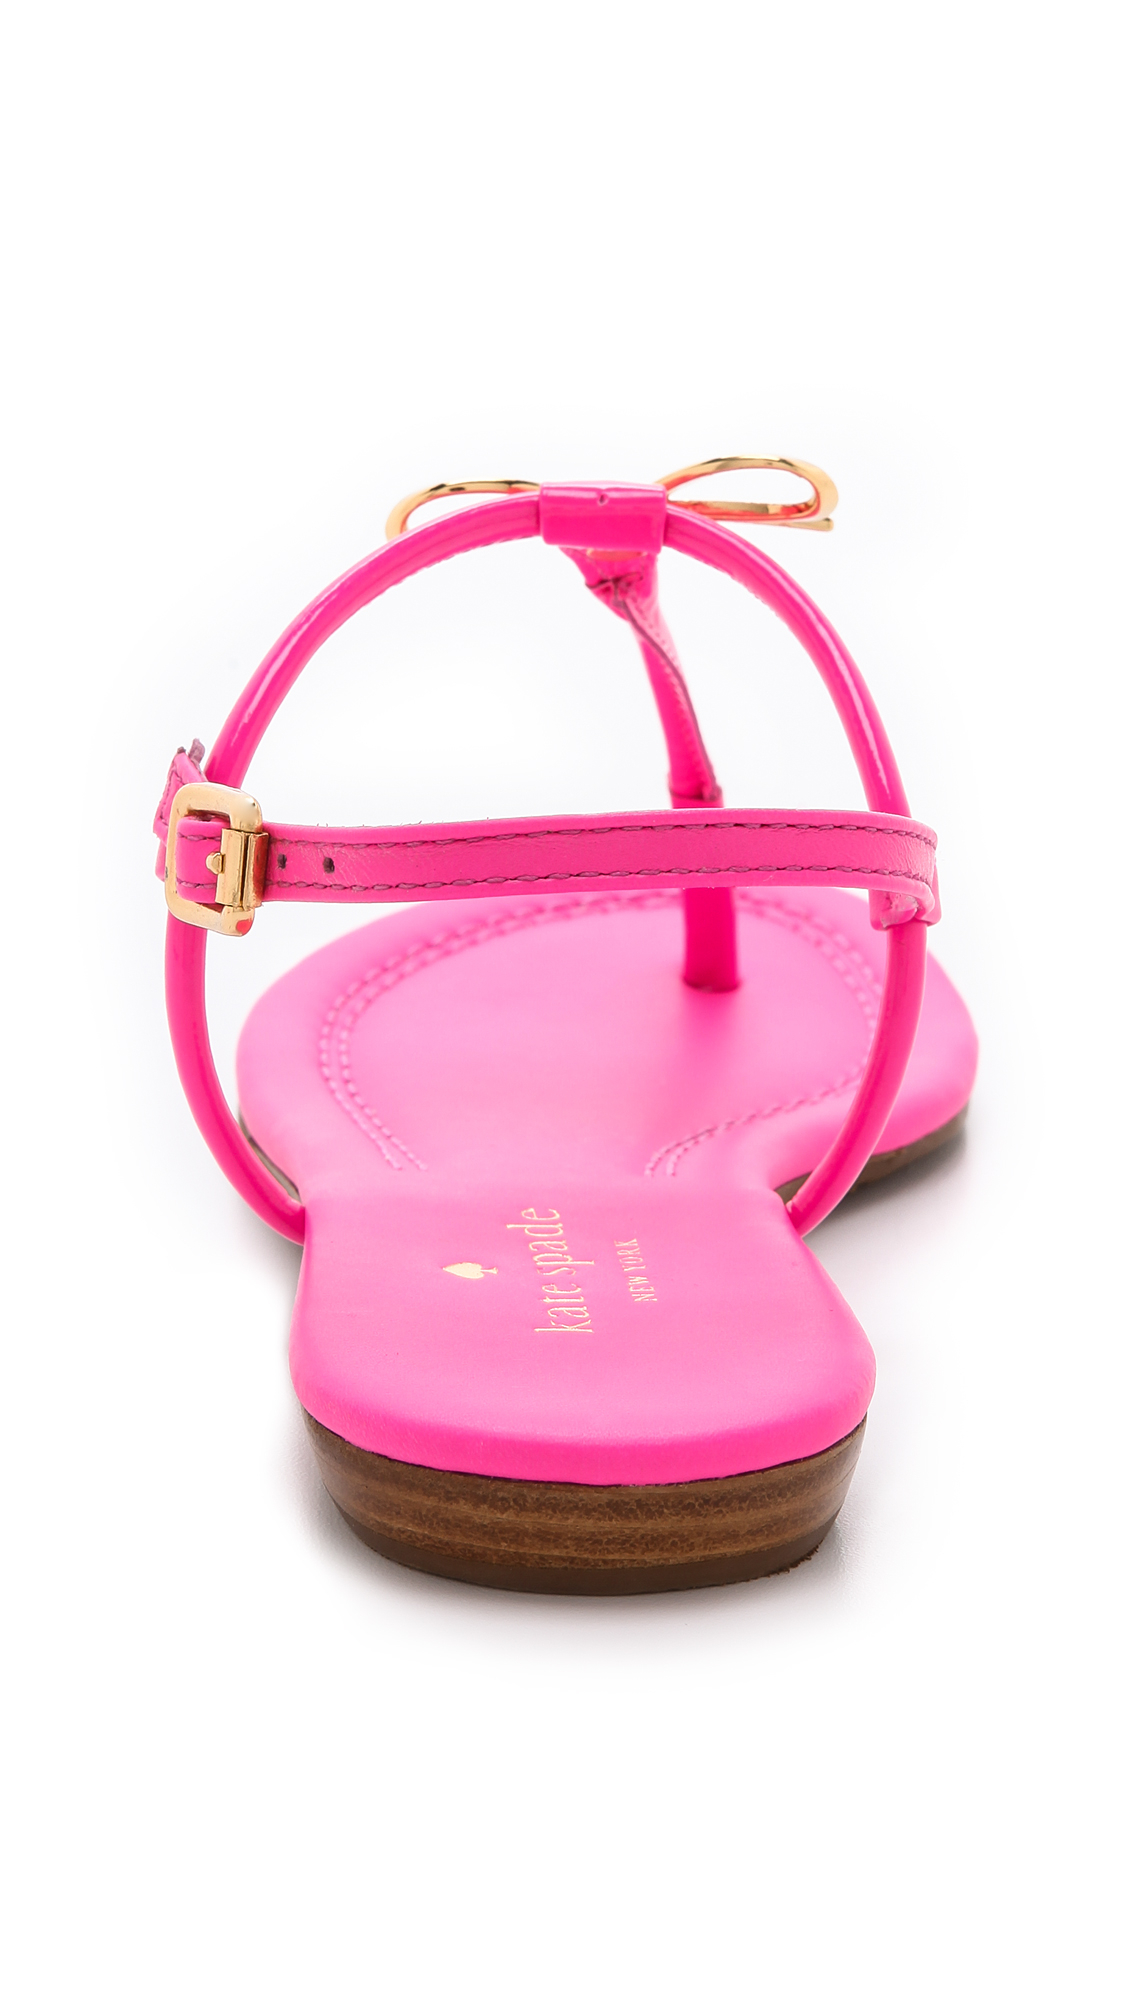 88af6b874270 Lyst - Kate Spade Tracie Bow Thong Sandals in Pink